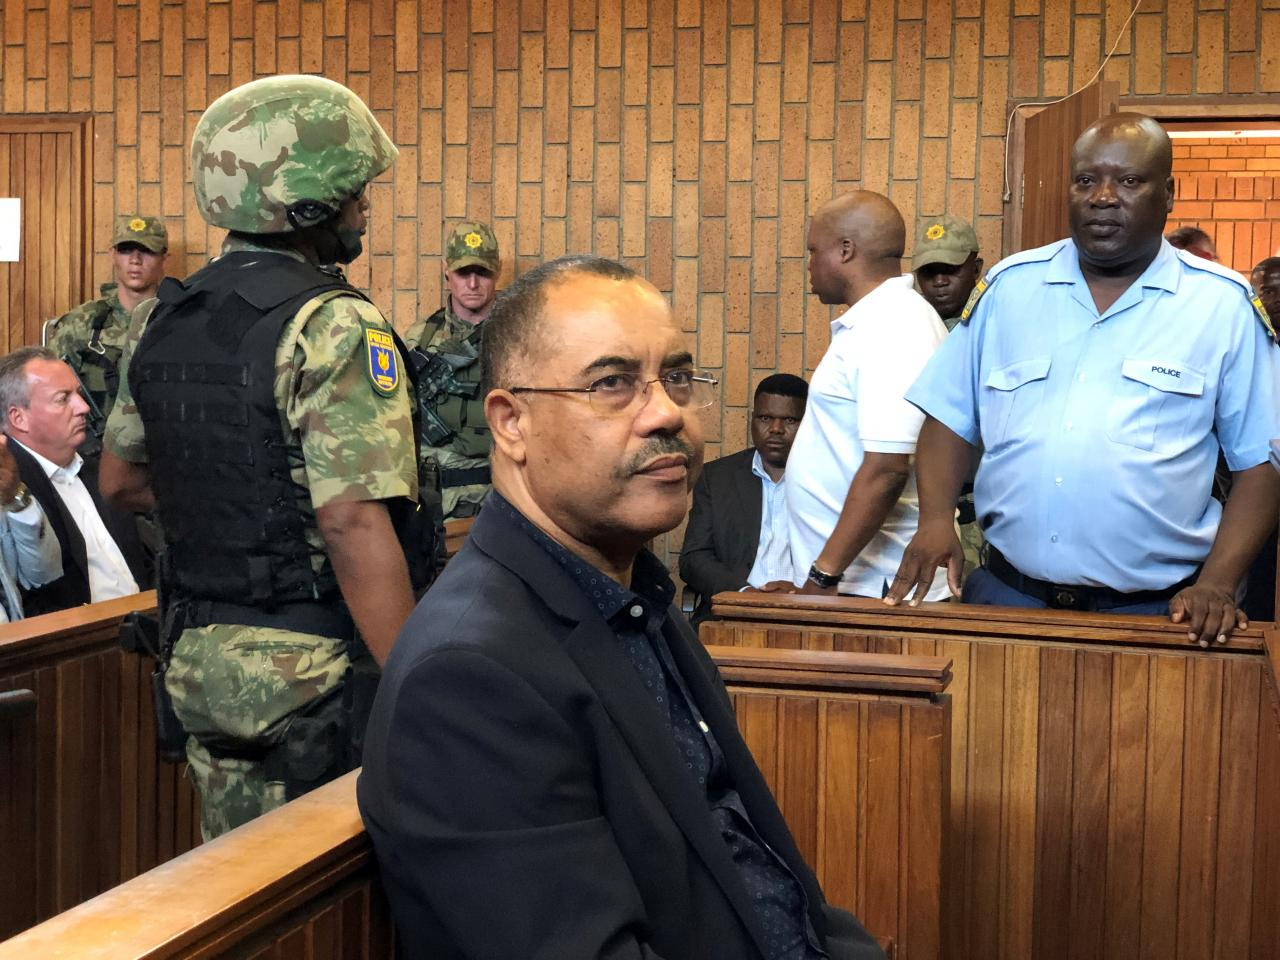 FILE PHOTO: Mozambique's former finance minister Manuel Chang appears in court during an extradition hearing in Johannesburg